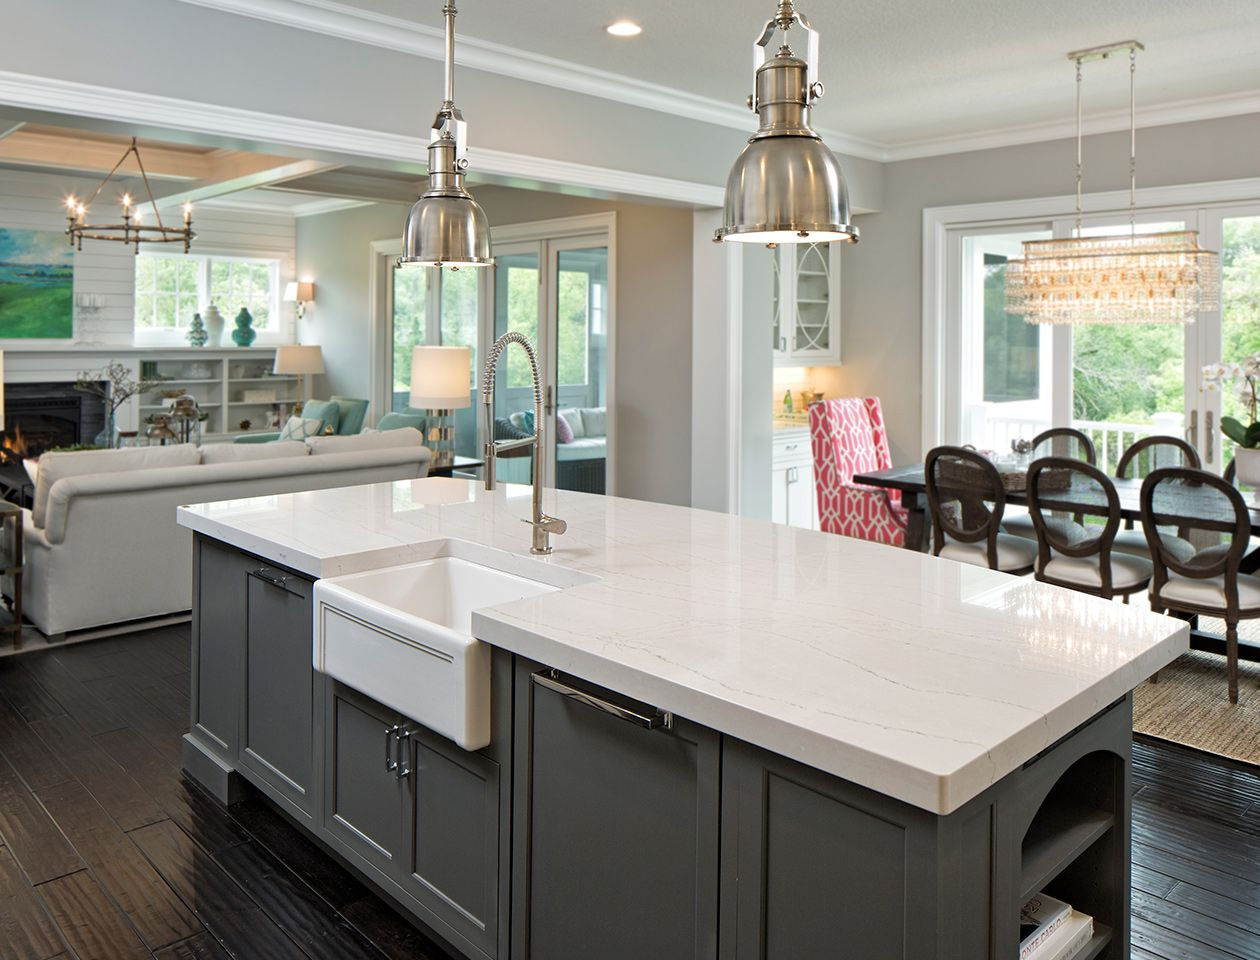 White Quartz Countertops : Stunning quartz countertop colors to gather inspiration